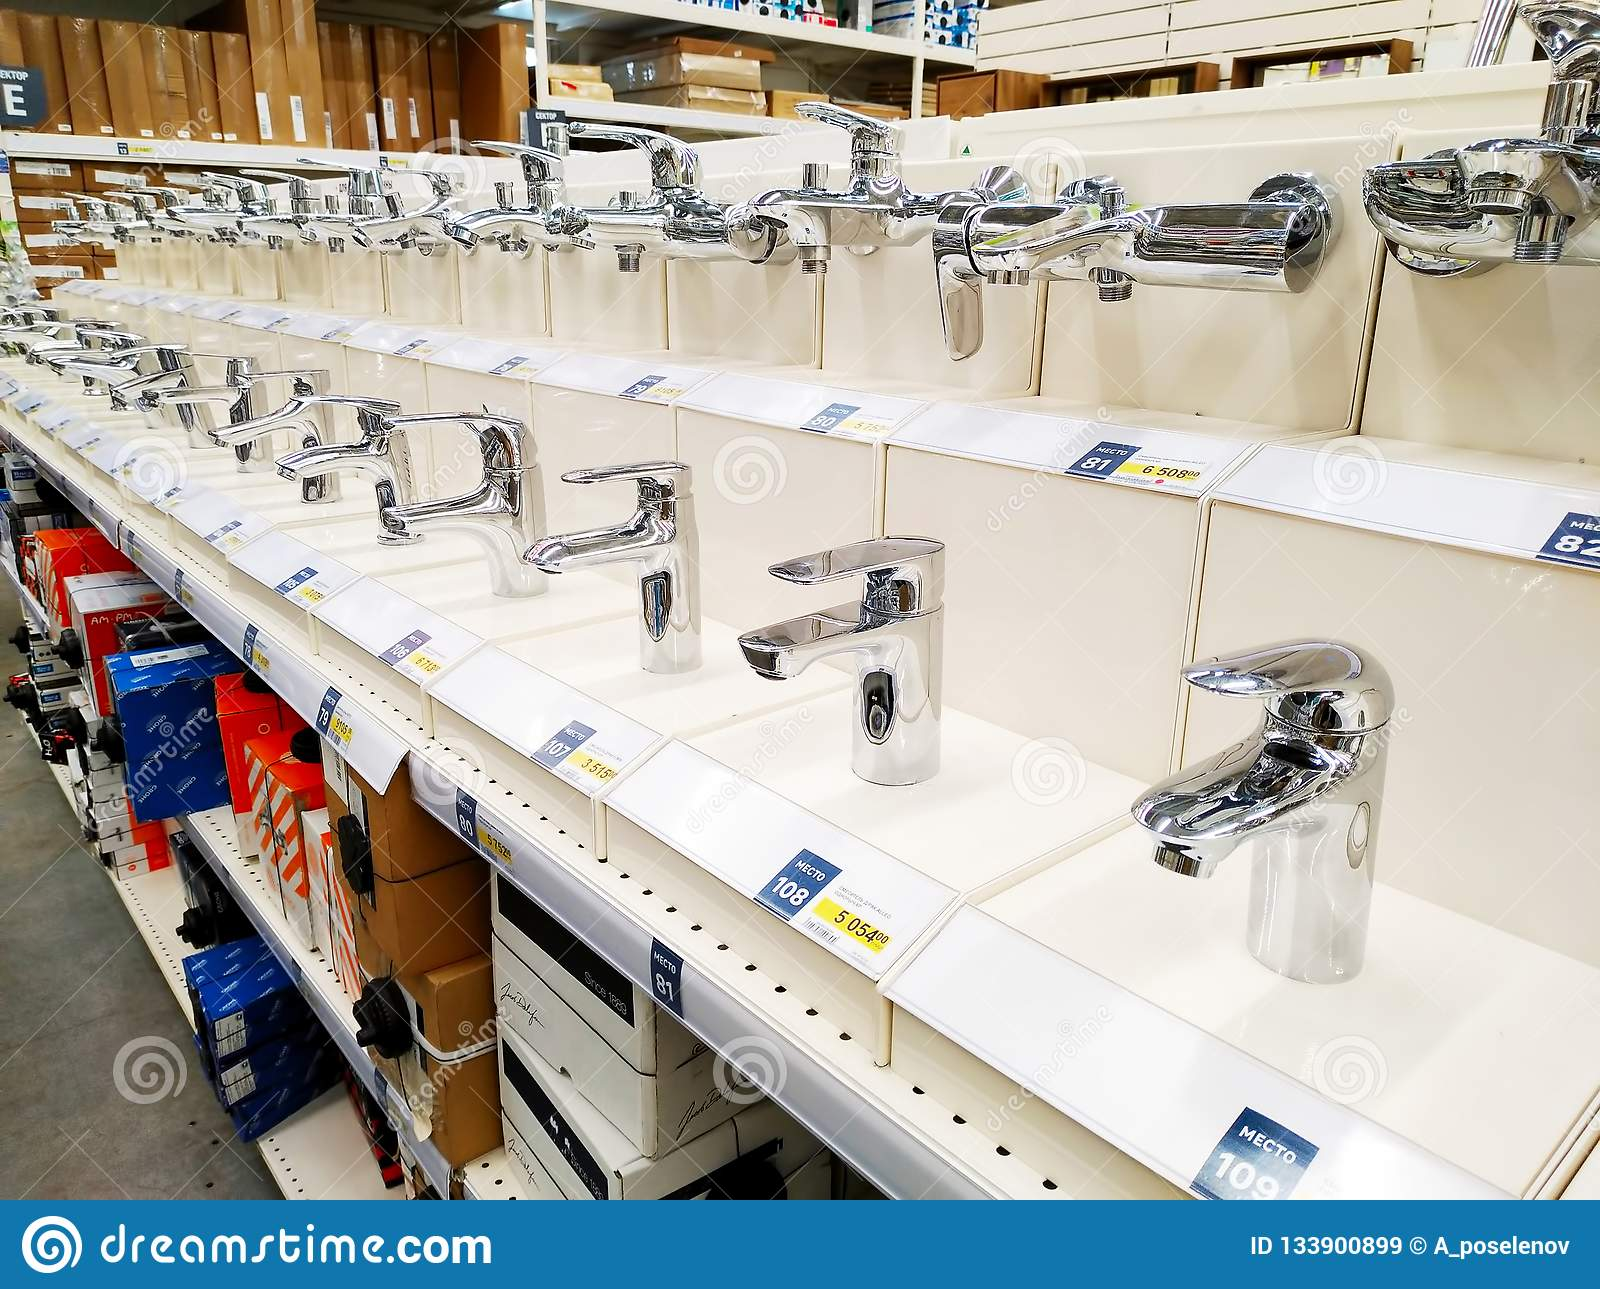 Various Taps For Bath And Shower Are Sold In A Large